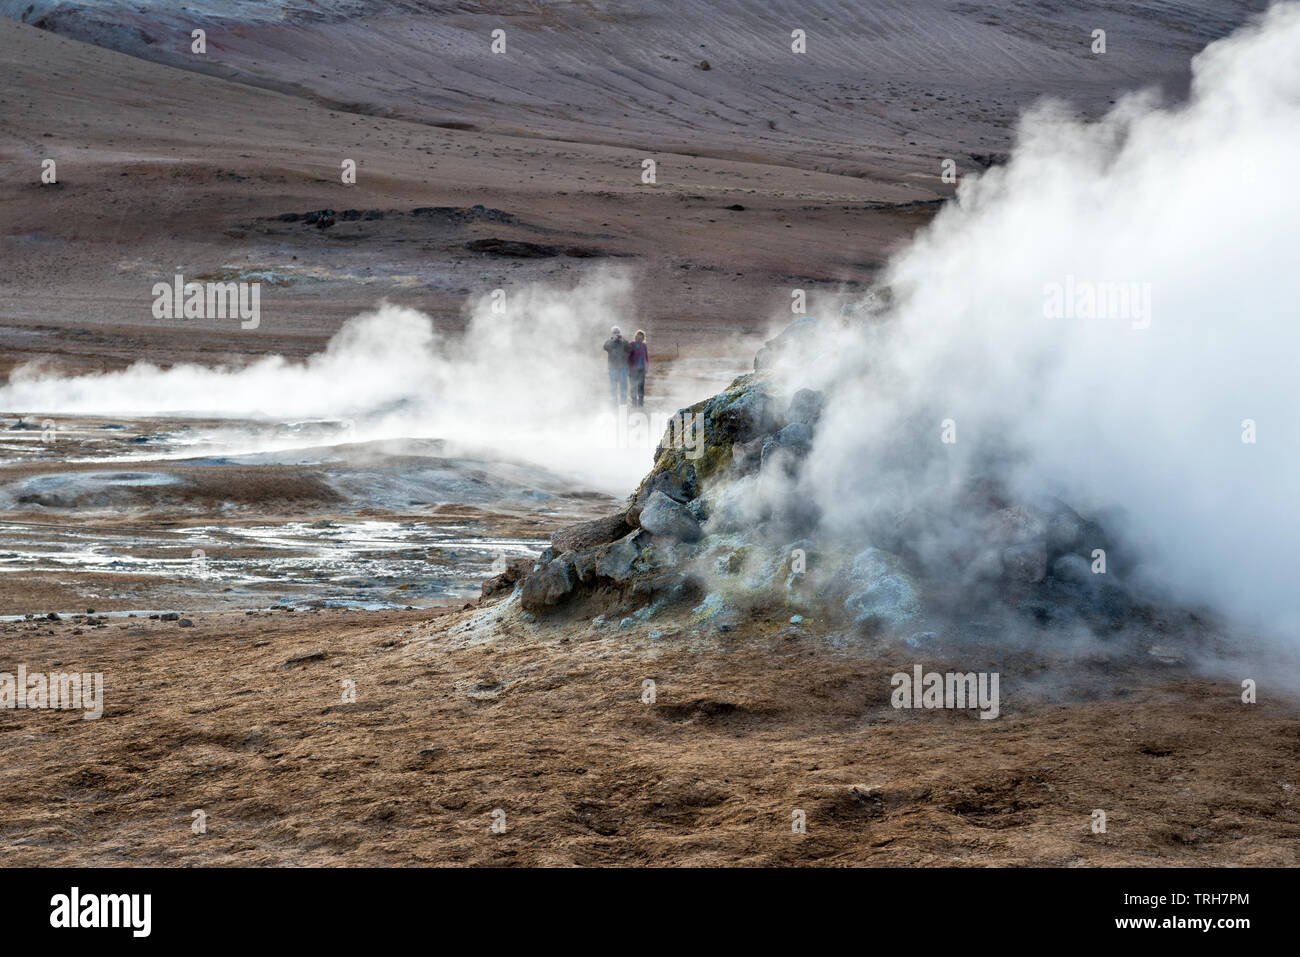 A steaming fumarole in the highly active geothermal area at Námafjall (Hverir), near Lake Mývatn in north-east Iceland - Stock Image